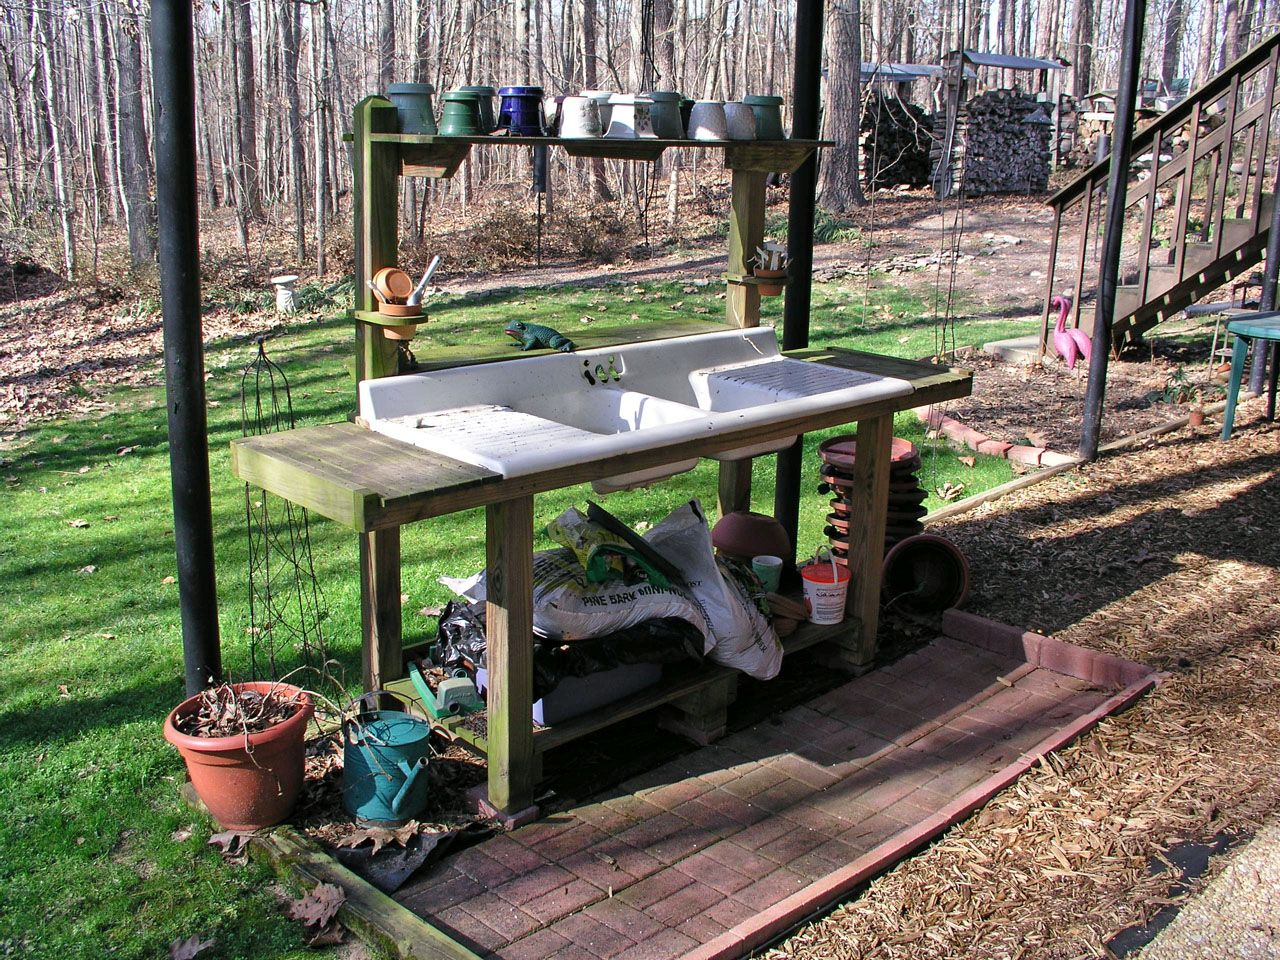 How to make a potting bench with old doors potting bench for Garden potting bench ideas